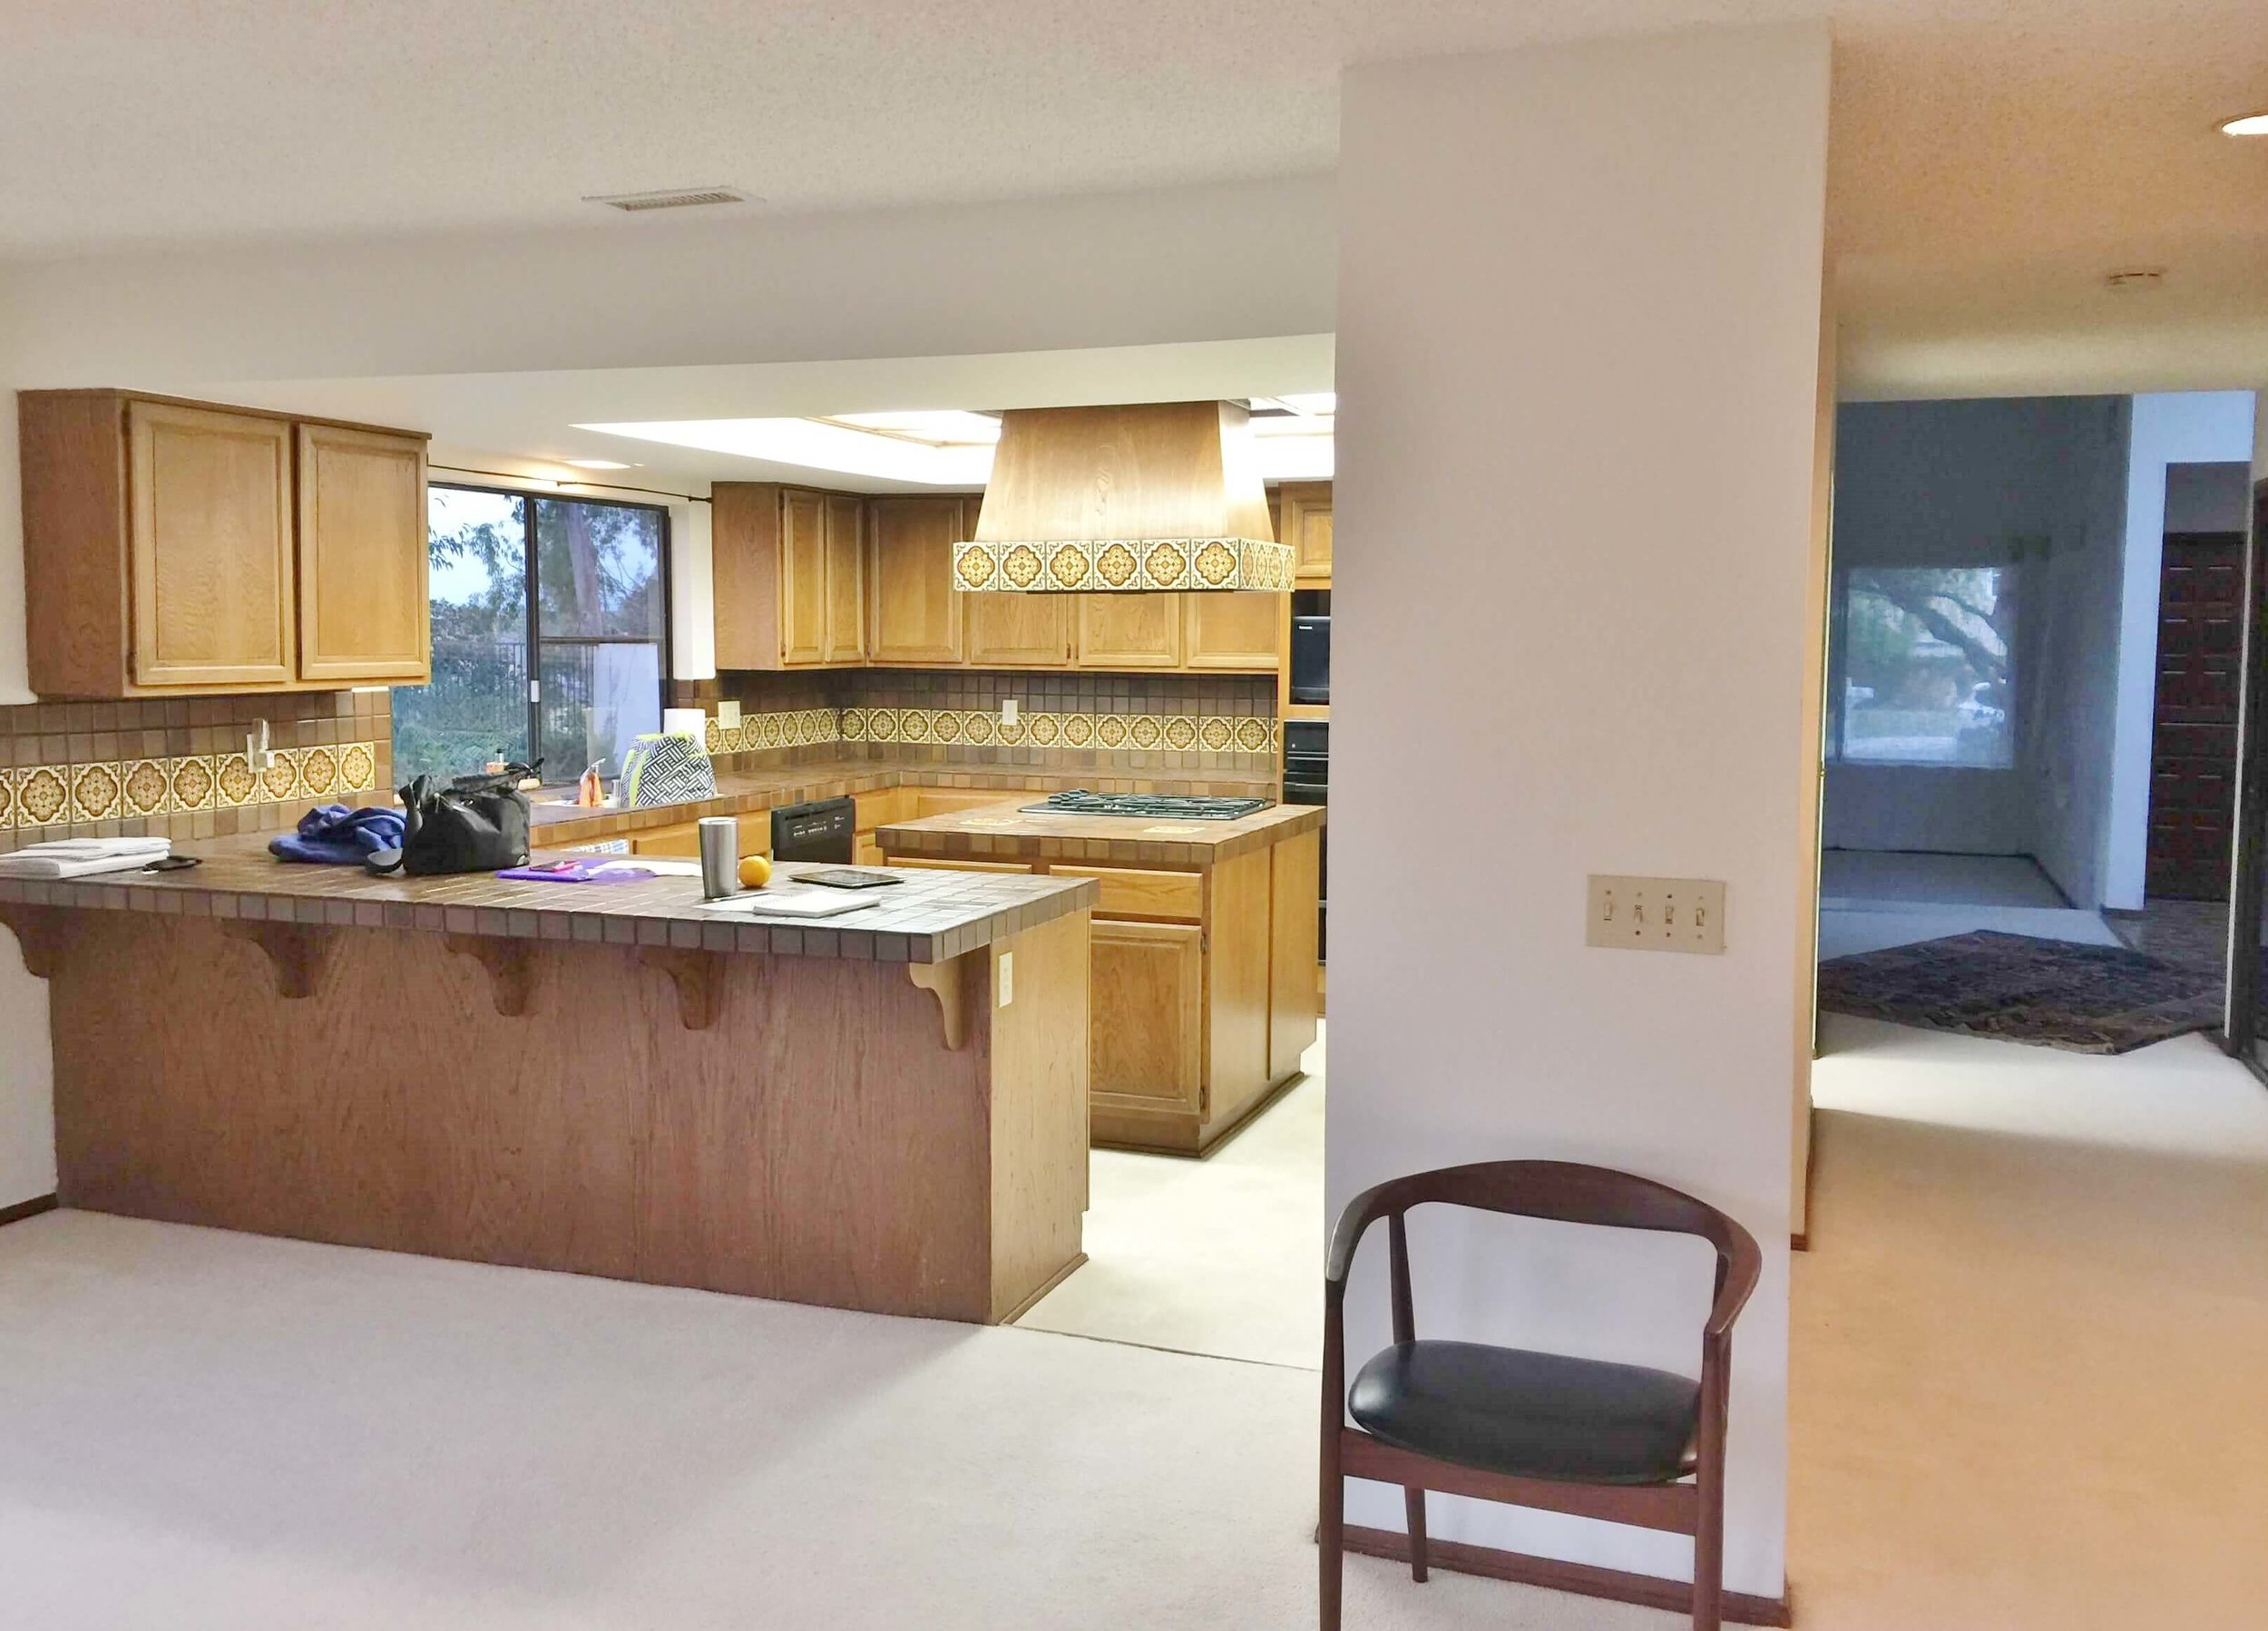 BEFORE California Kitchen Remodel